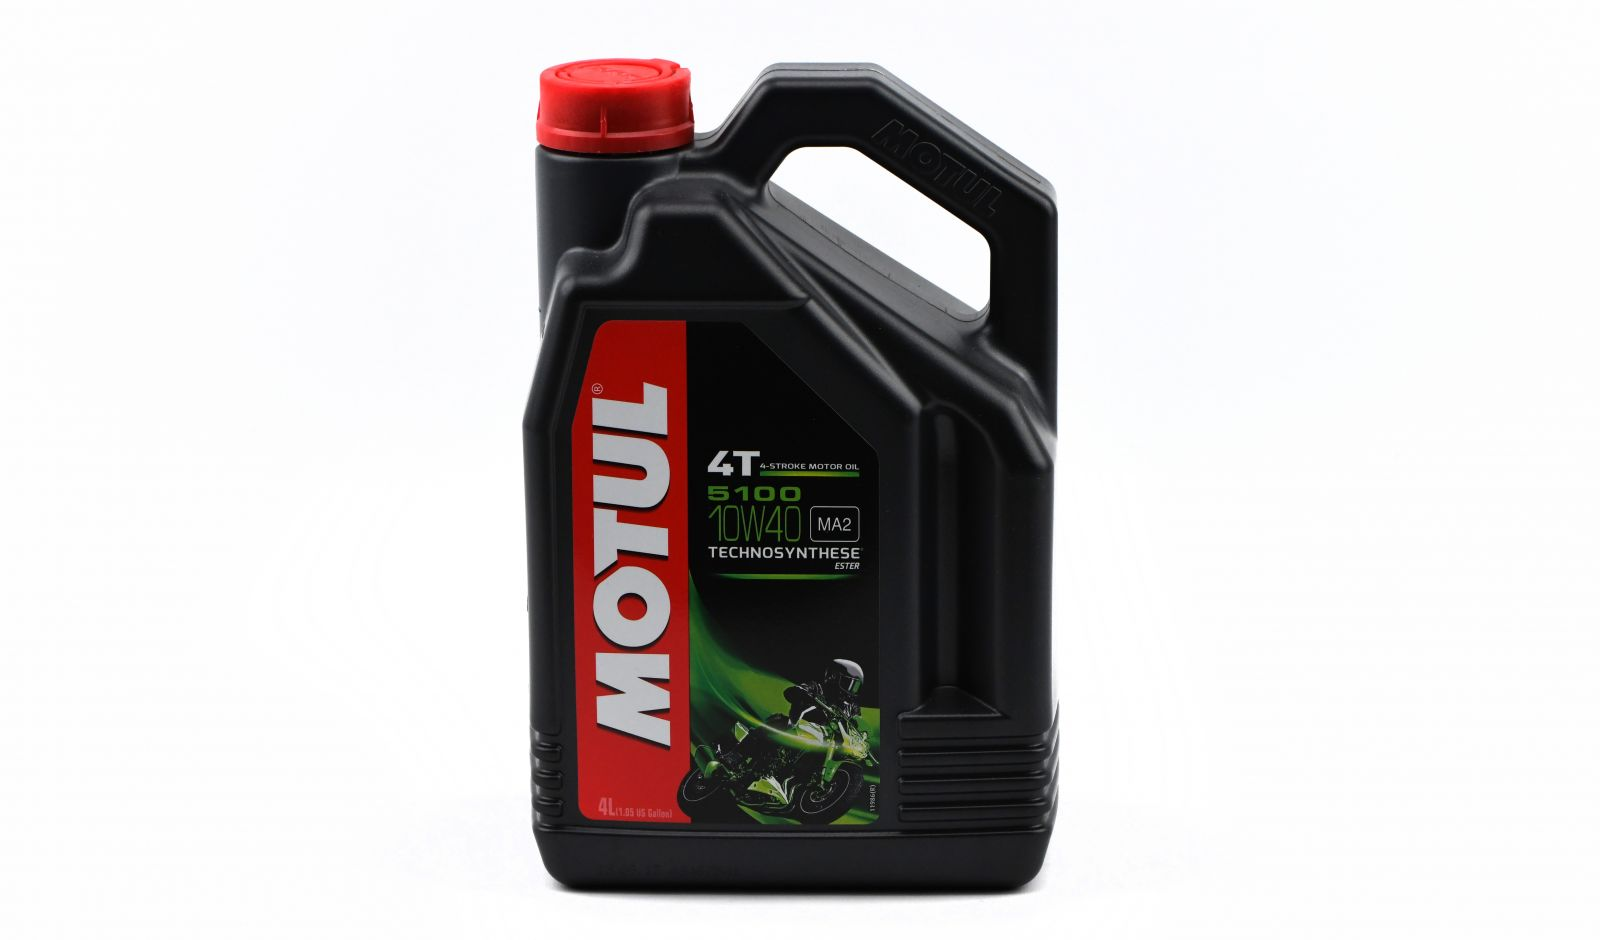 4 stroke engine oils - 670144M image